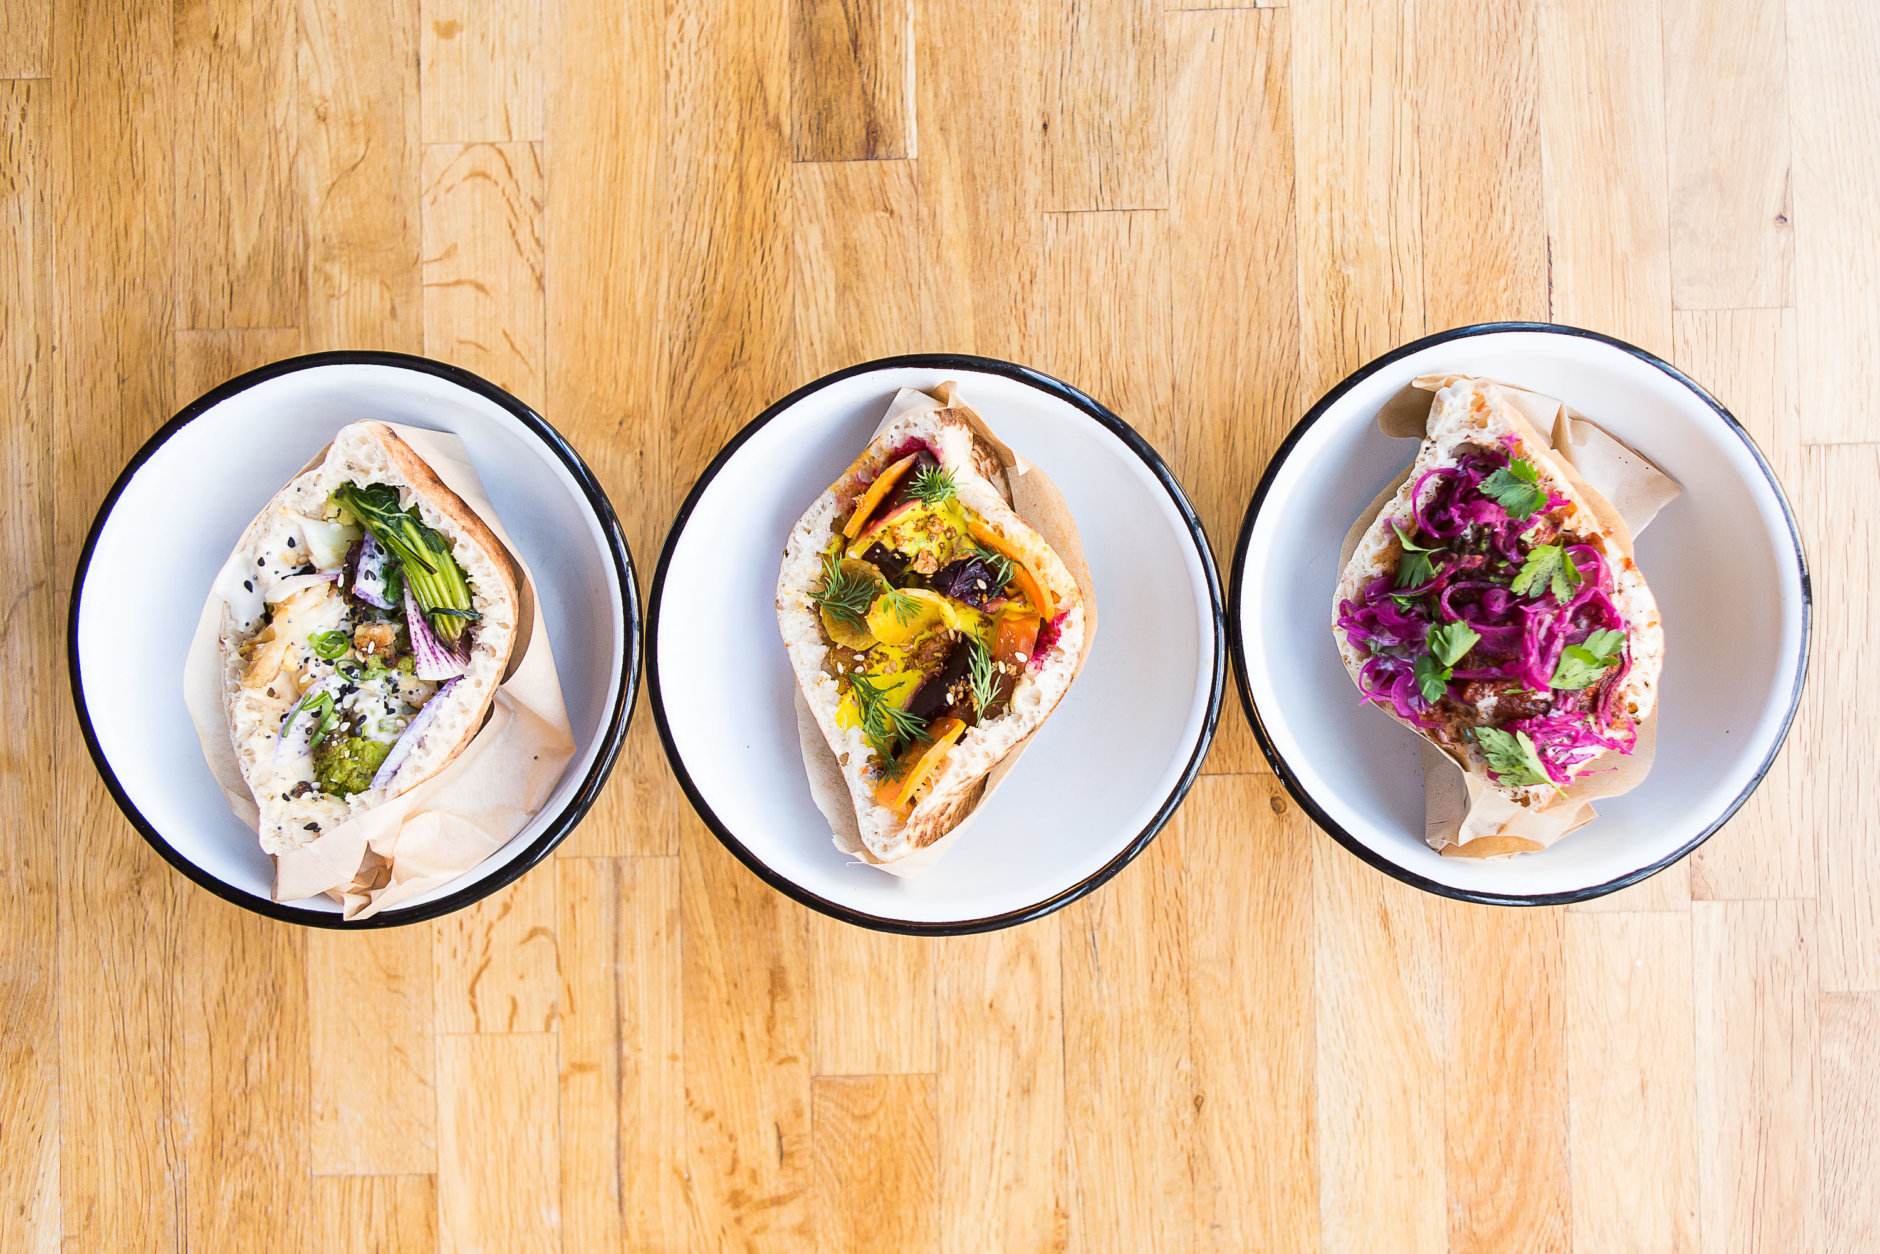 At Little Sesame, hummus is the star of the menu in bowls and sandwiches. (Courtesy Anna Meyer)